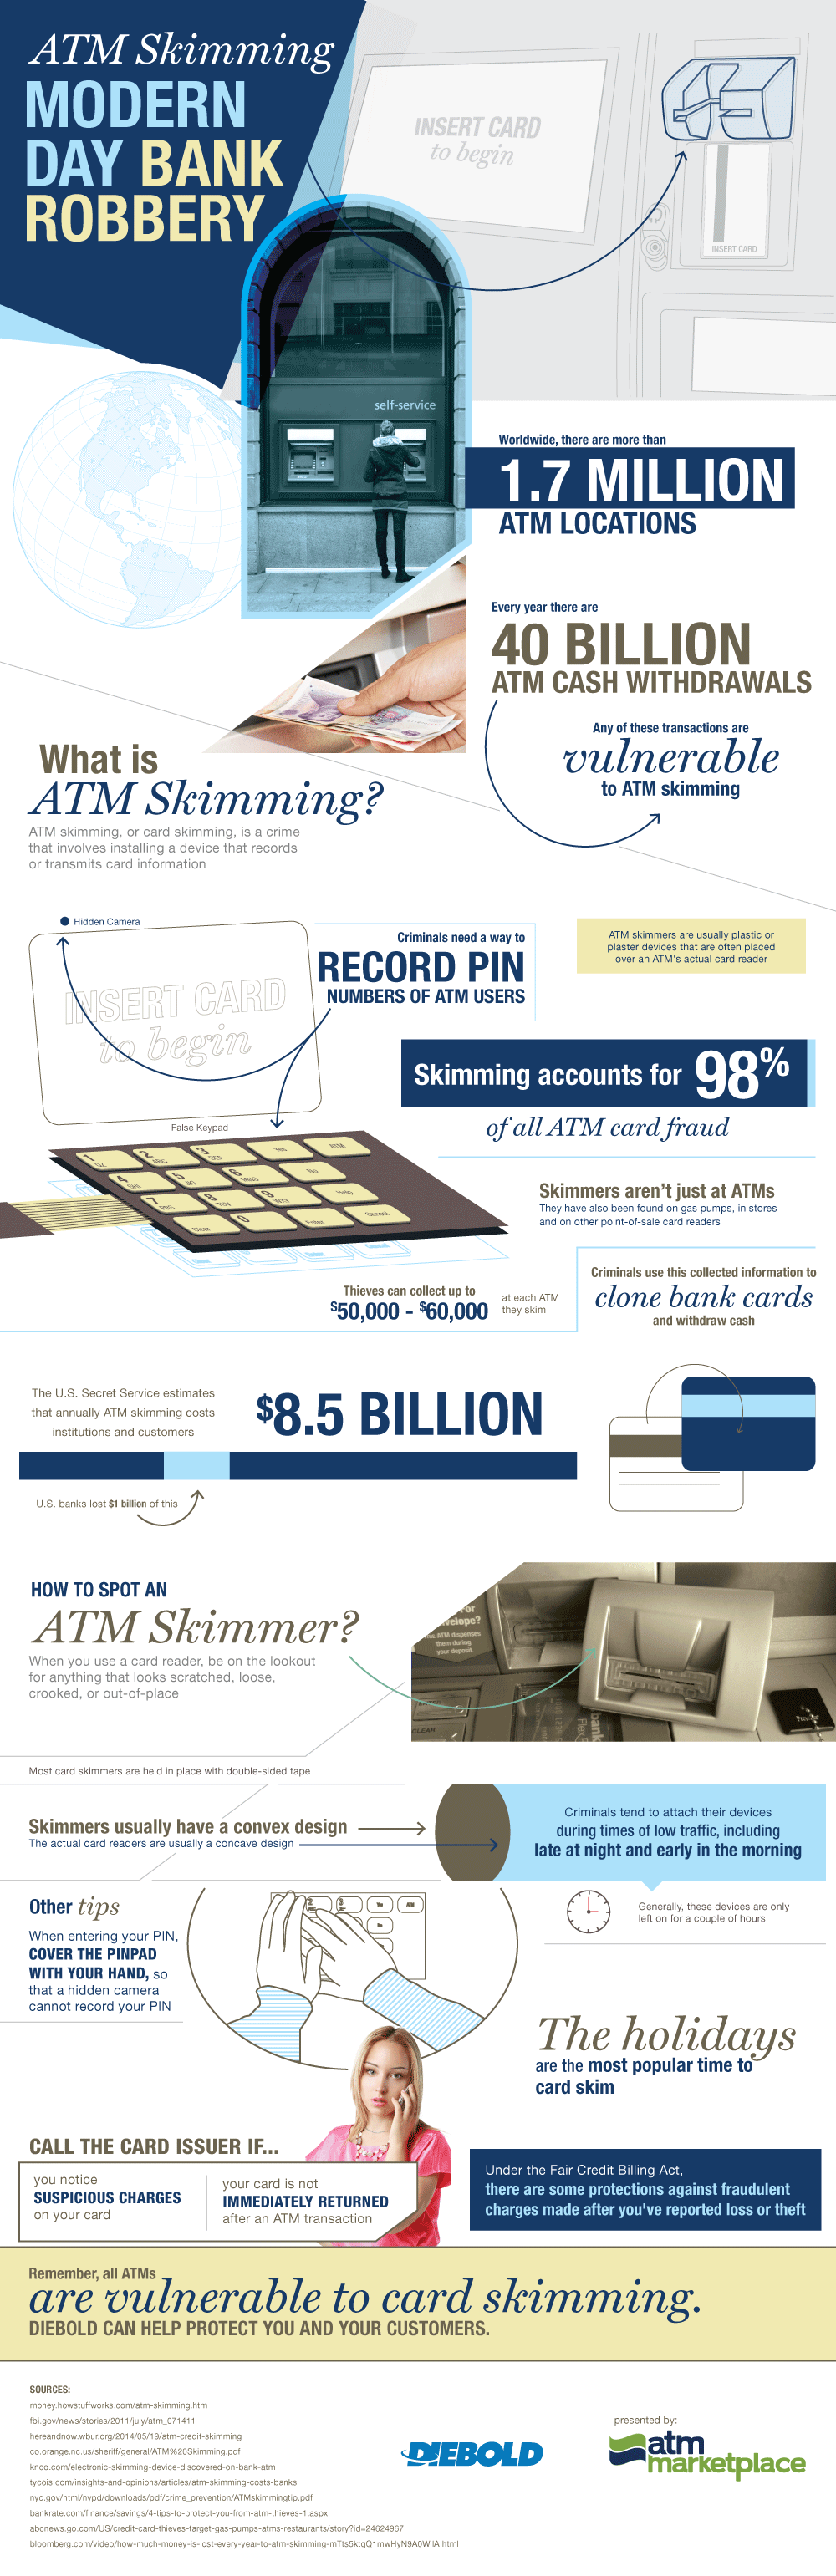 ATM-Skimming-Modern-Day-Bank-Robbery